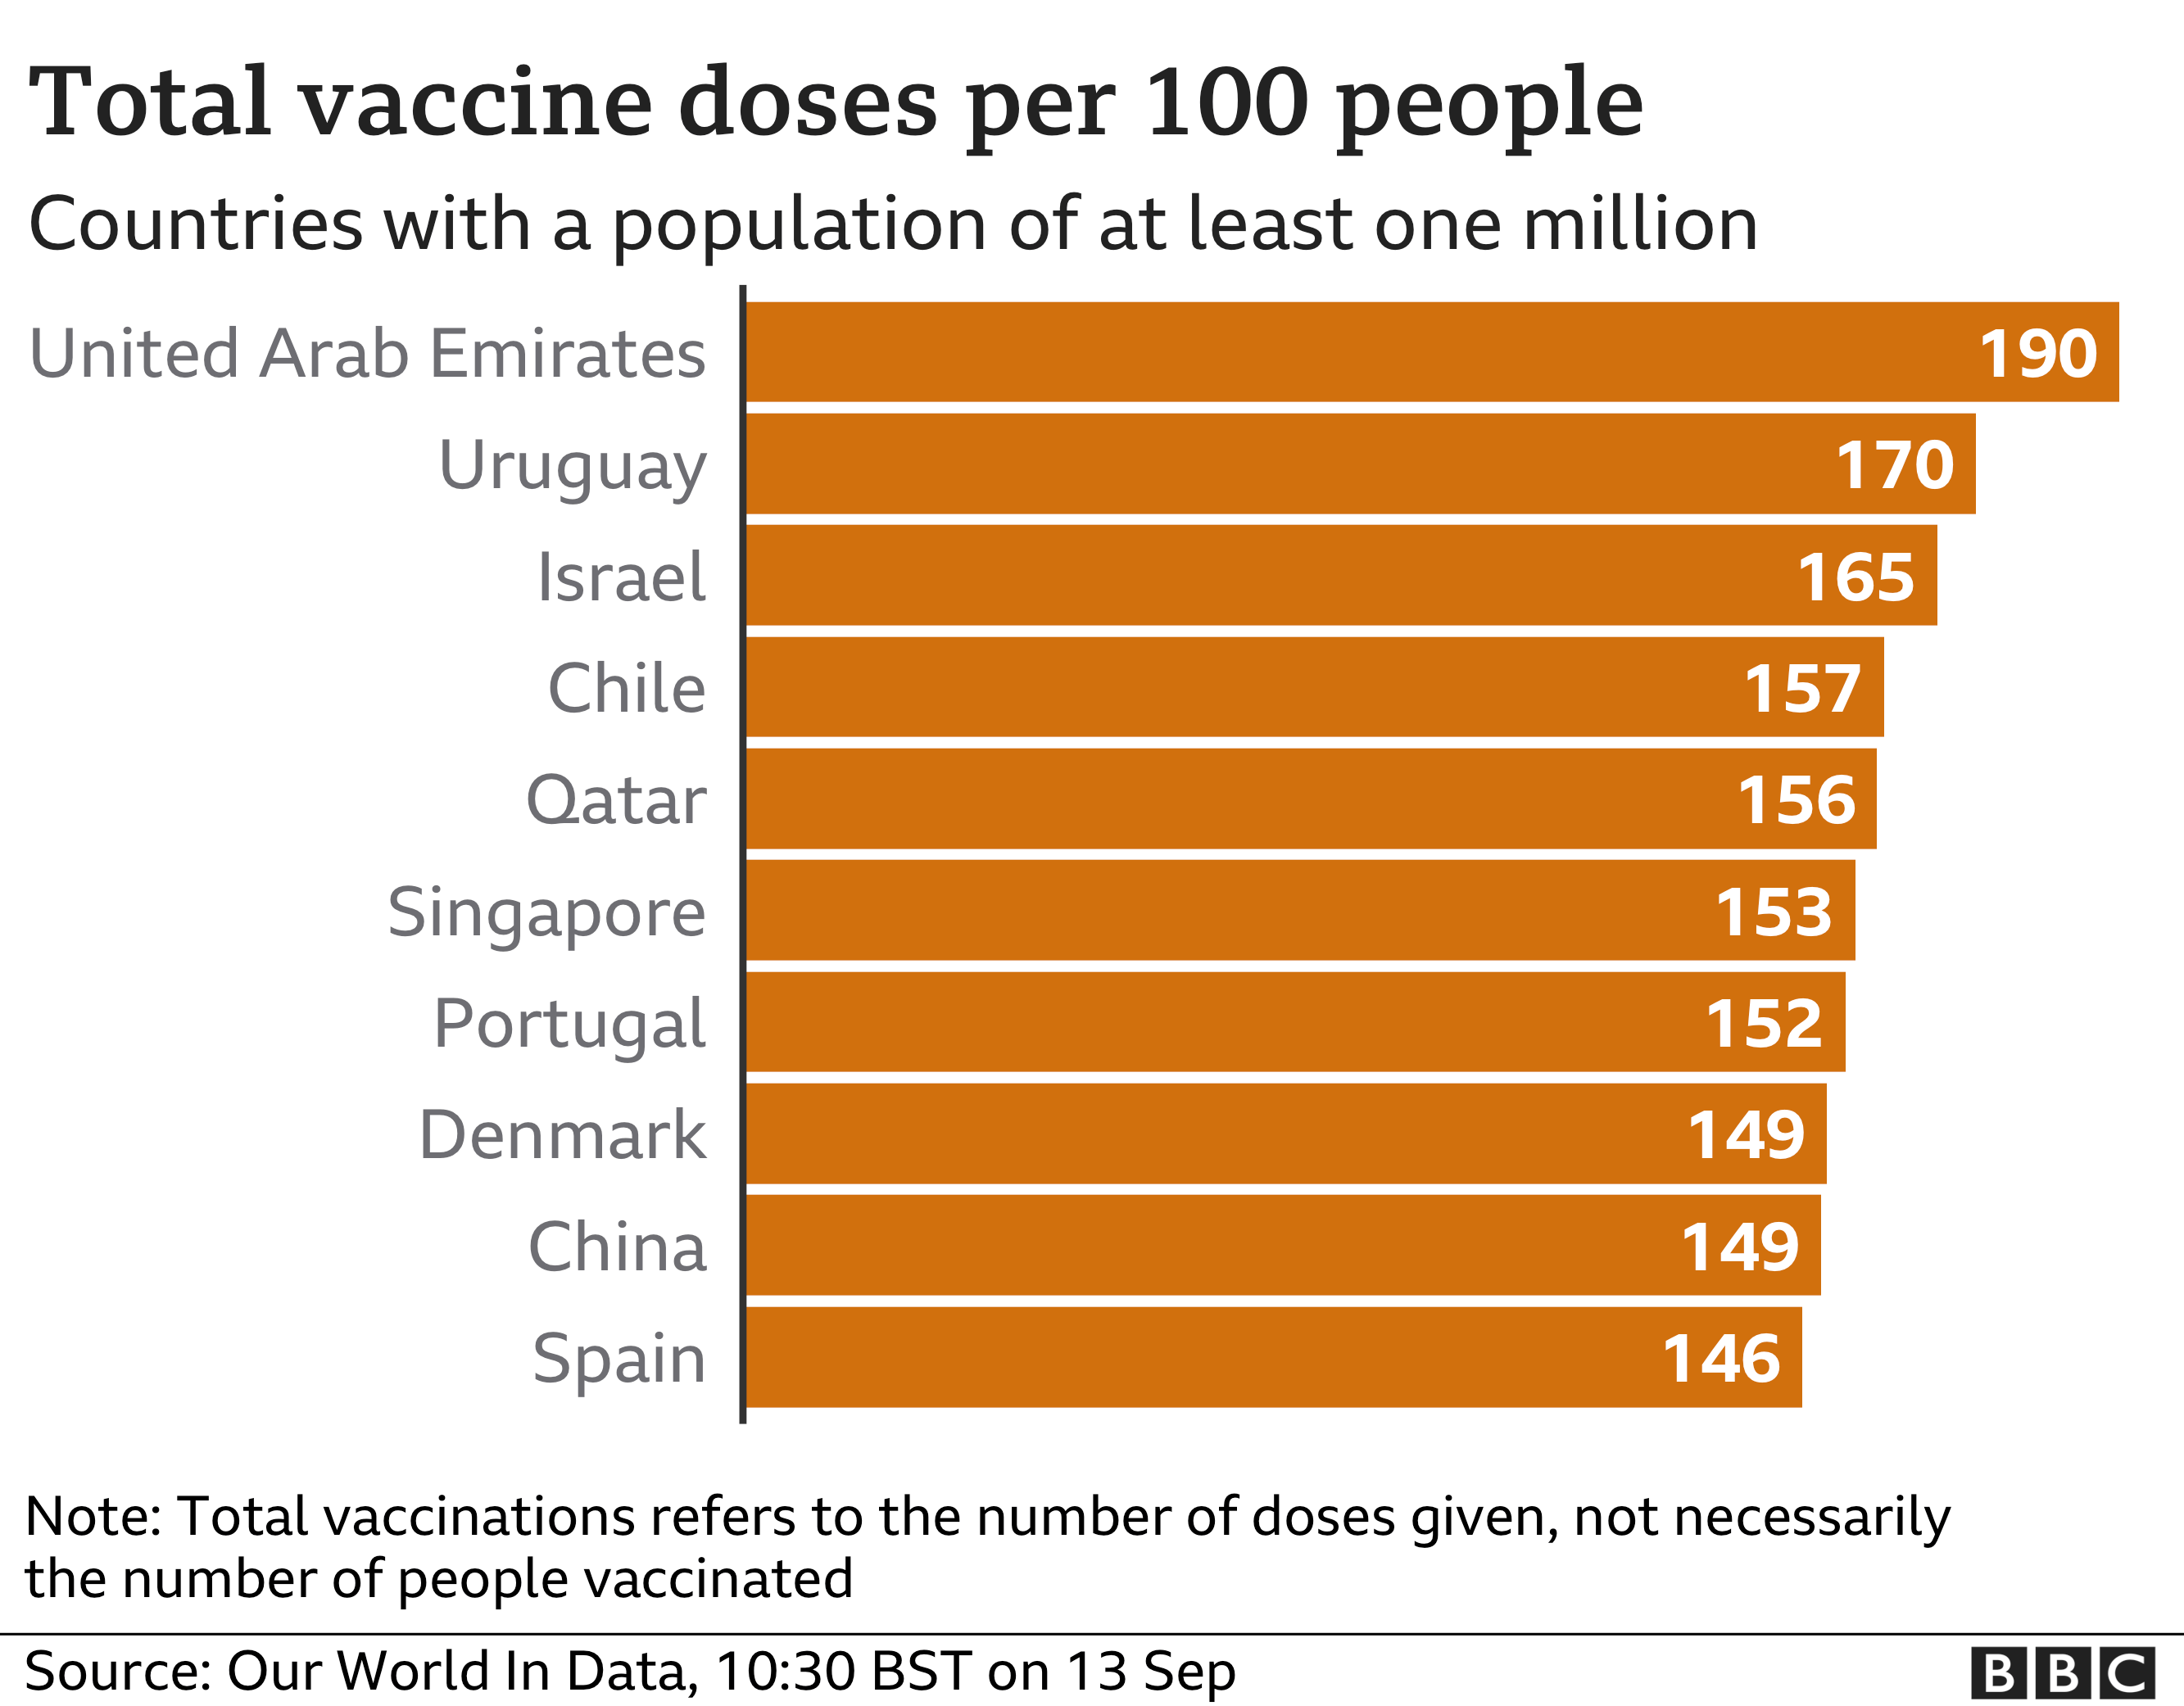 Chart showing vaccine doses per 100 people in countries where the population is over one million. Updated 13 September.